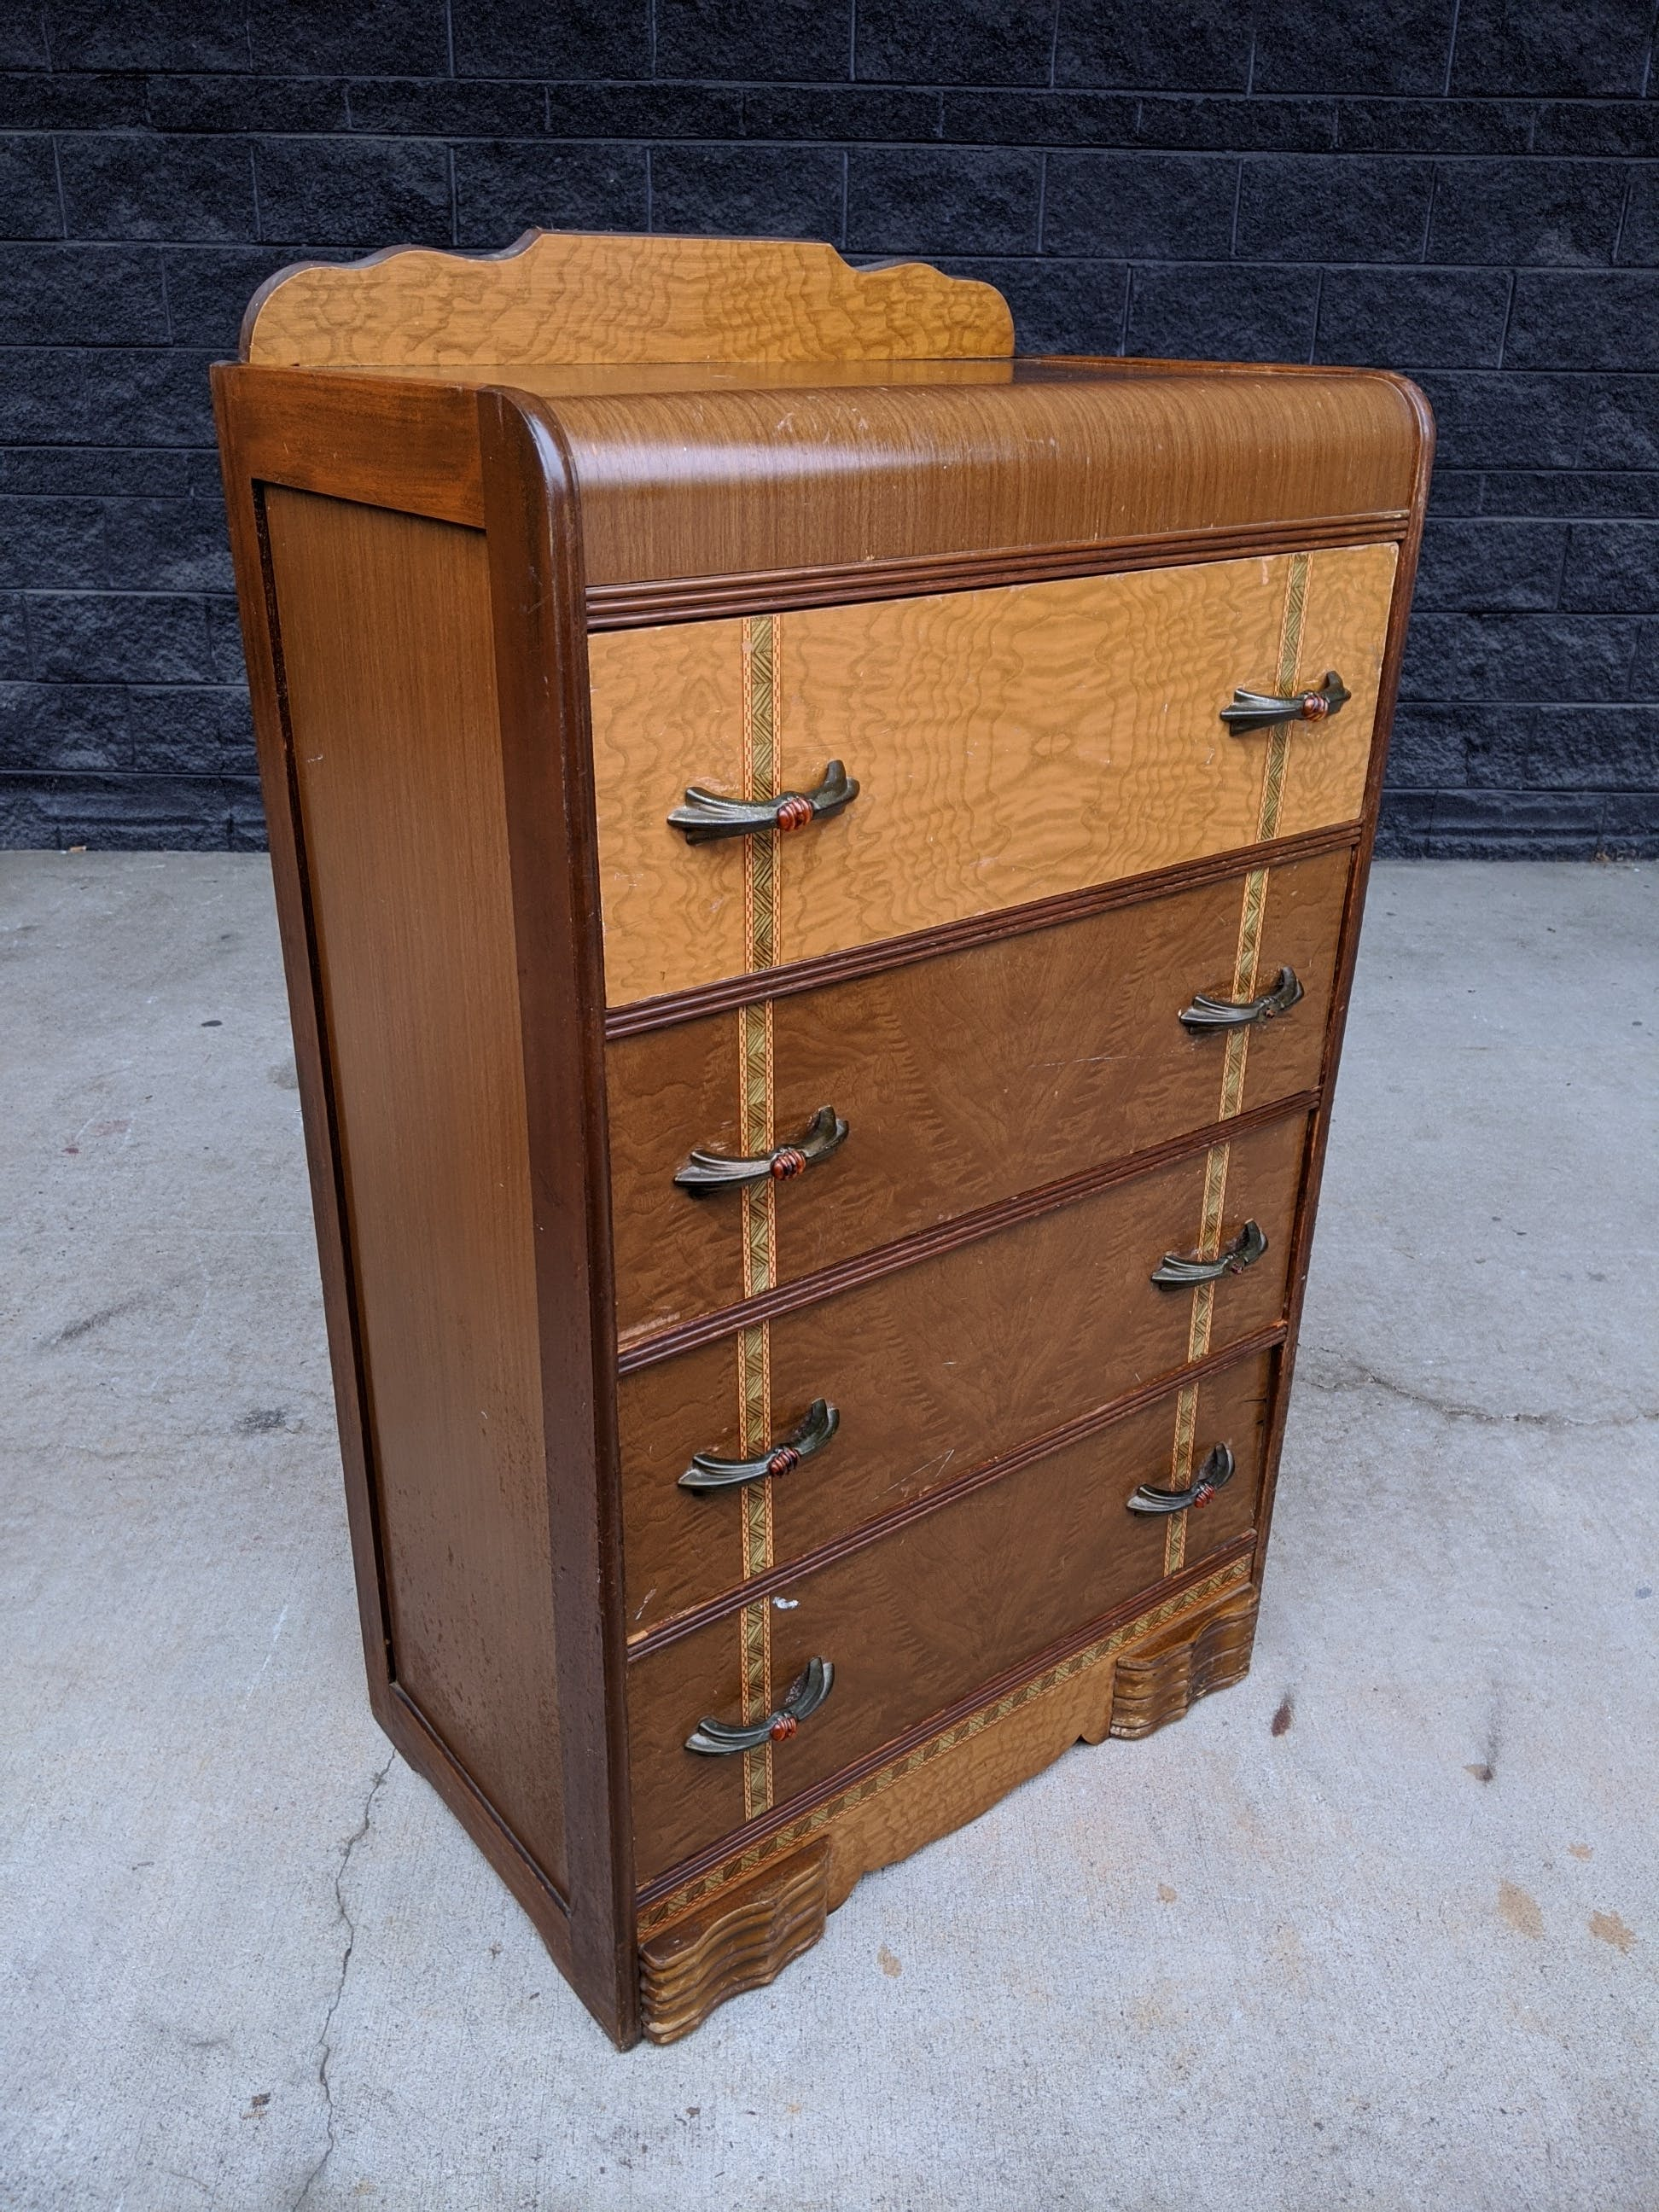 vtg 30s 1930s art deco waterfall wood dovetailed chest drawers dresser storage